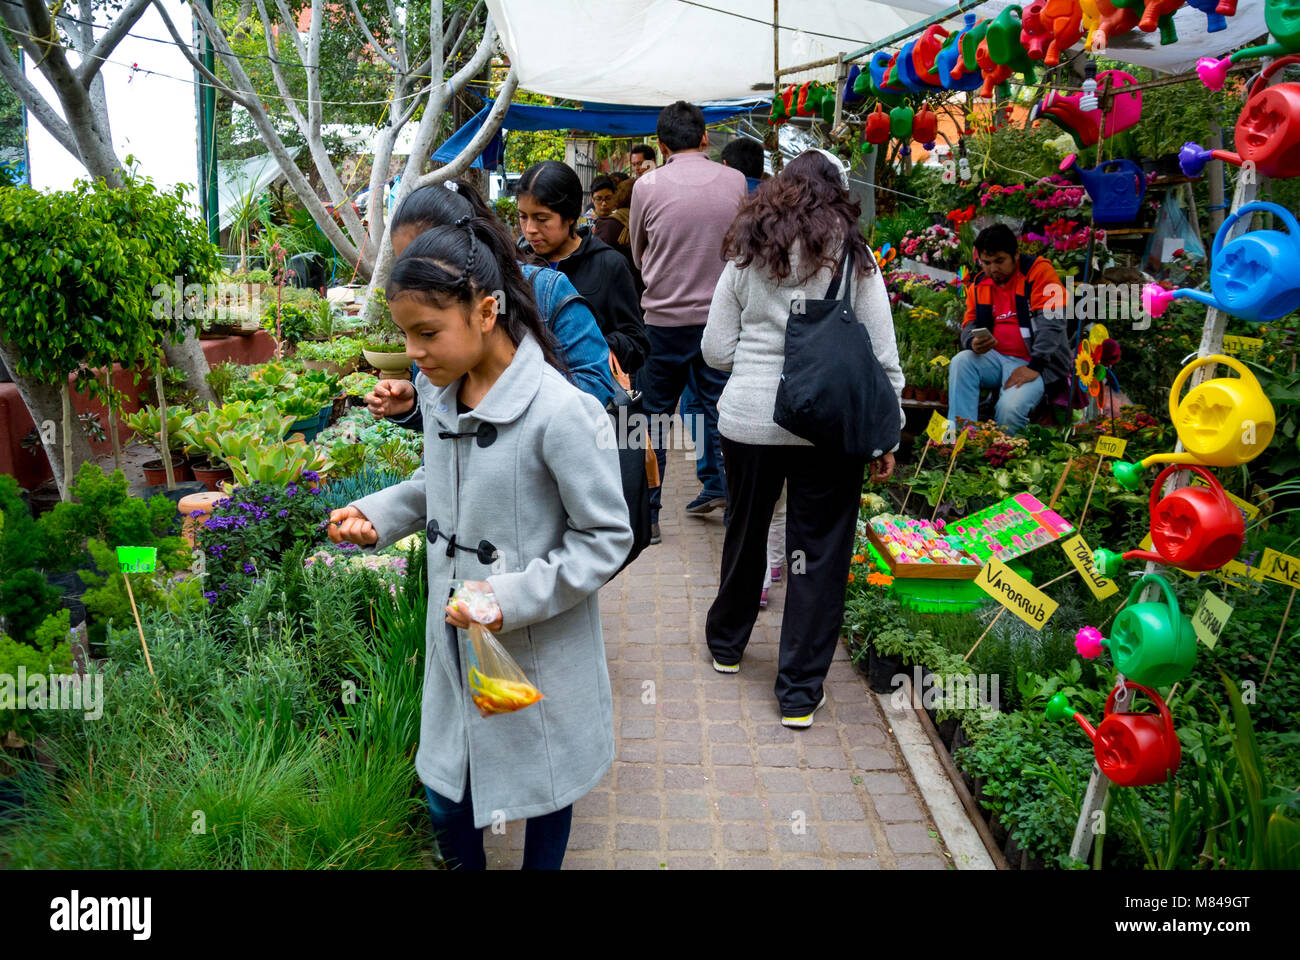 Local people buying plants at flower market, san miguel de allende, mexico - Stock Image